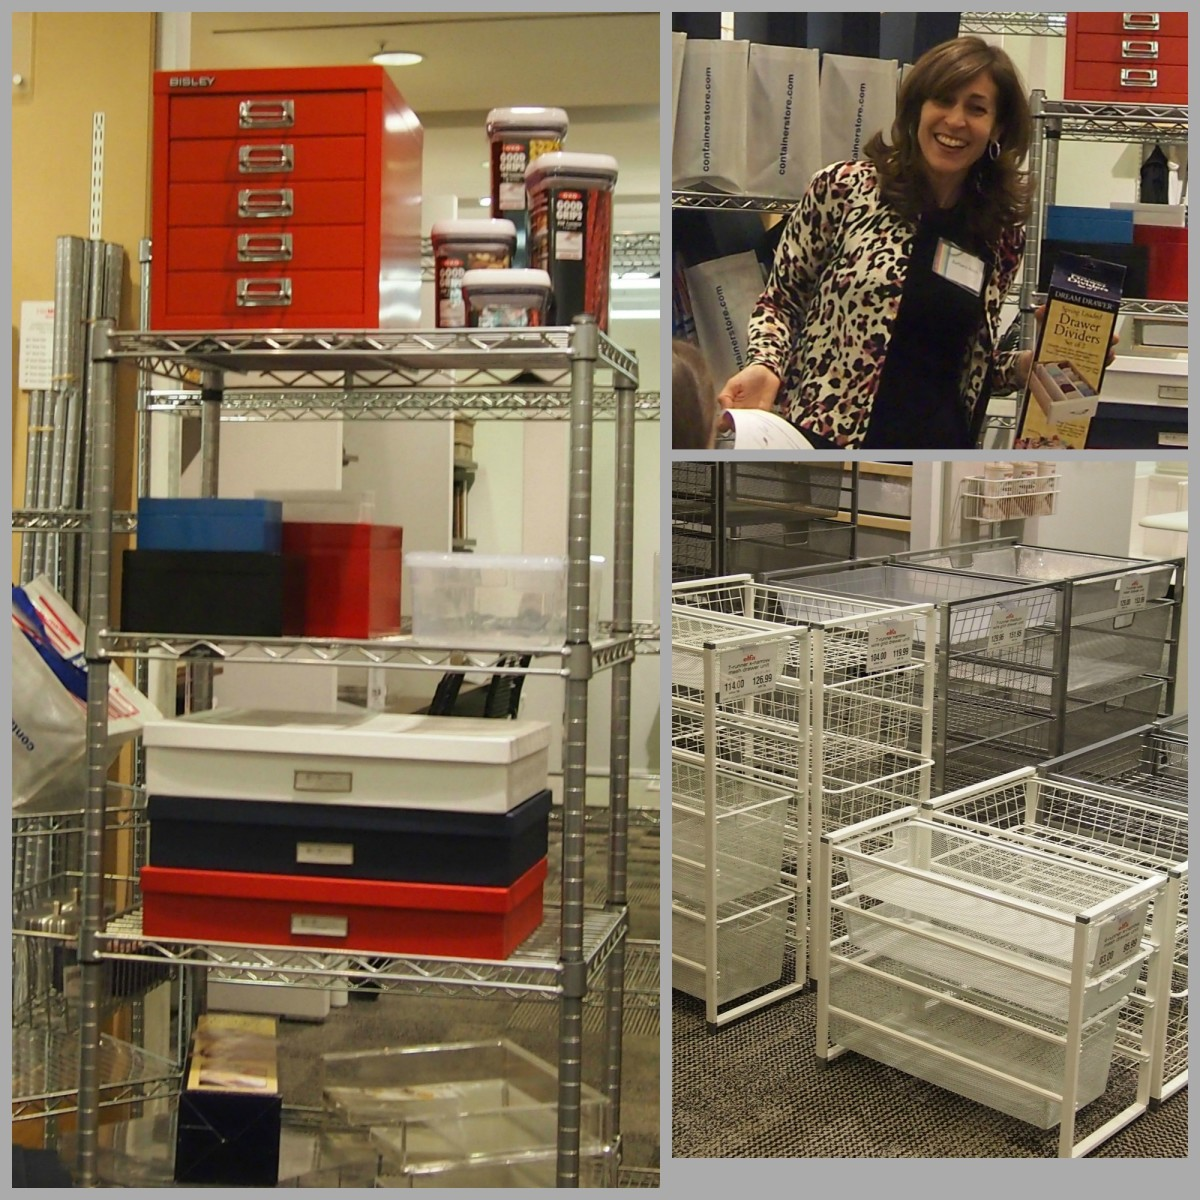 Barbara Reich shares her favorite Container Store products